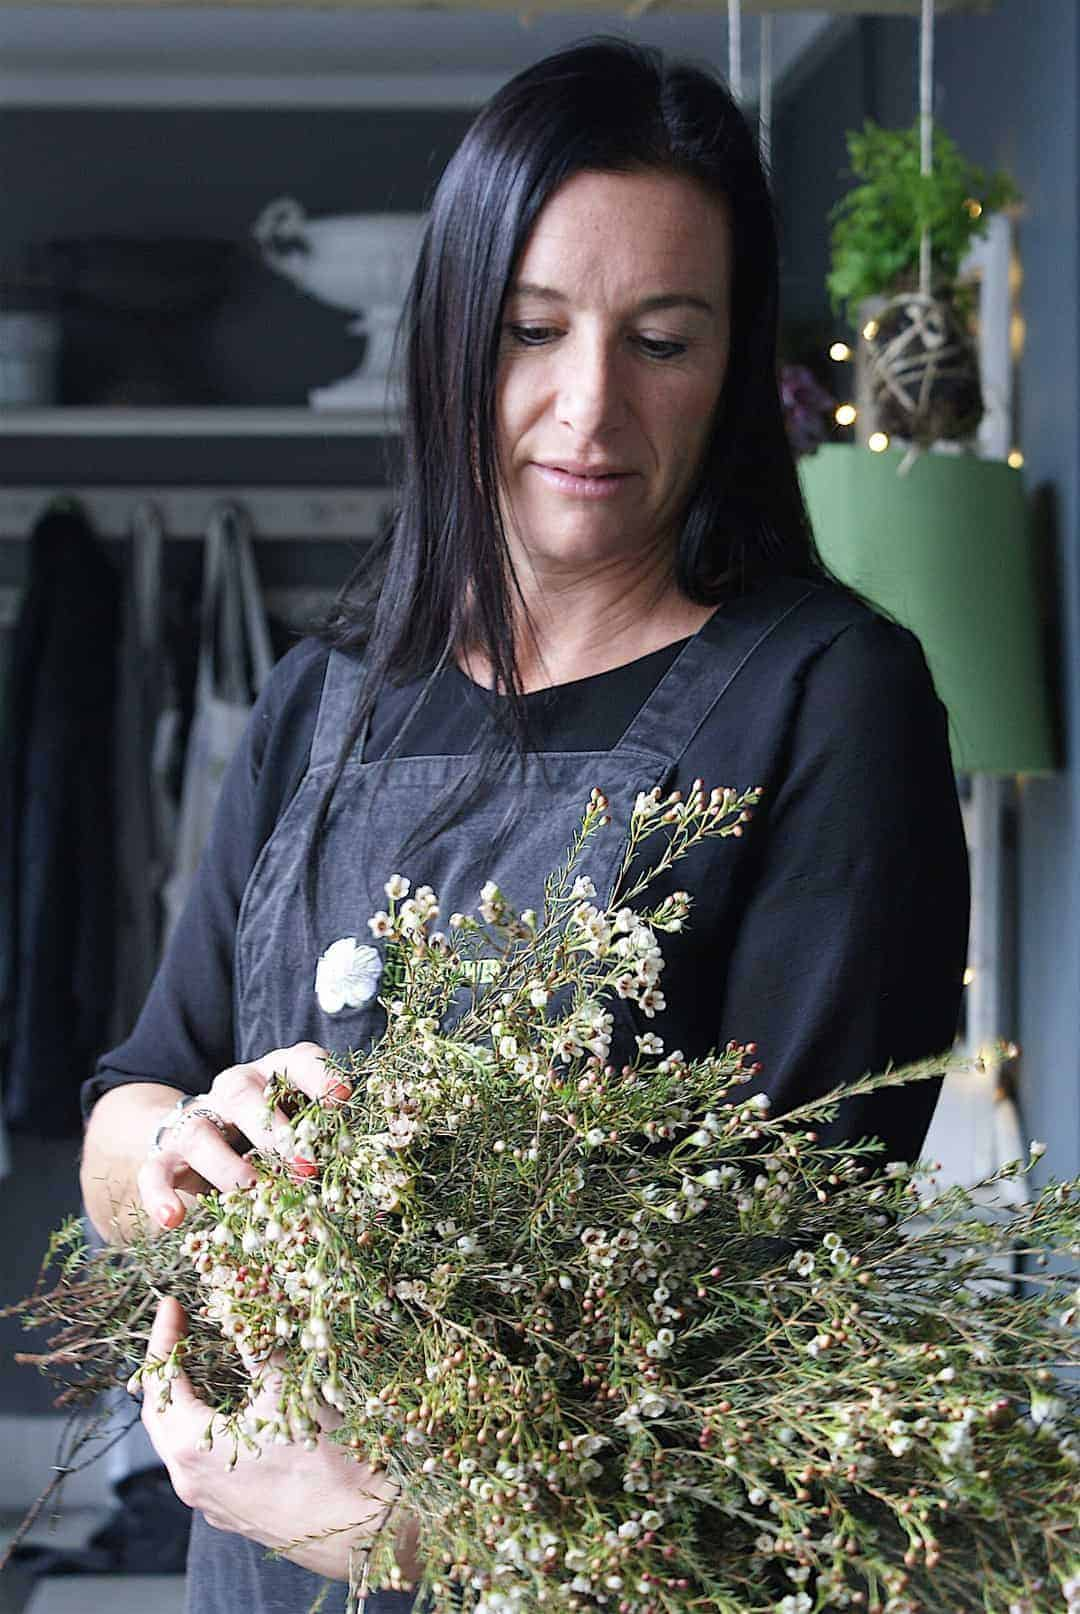 loved making a christmas wreath with Georgia Miles of Sussex Flower School - click through to see behind the scenes and to find out more about Georgia who offers the best flower workshops and courses if you're thinking of starting your own flower business or simply looking for some creative fun